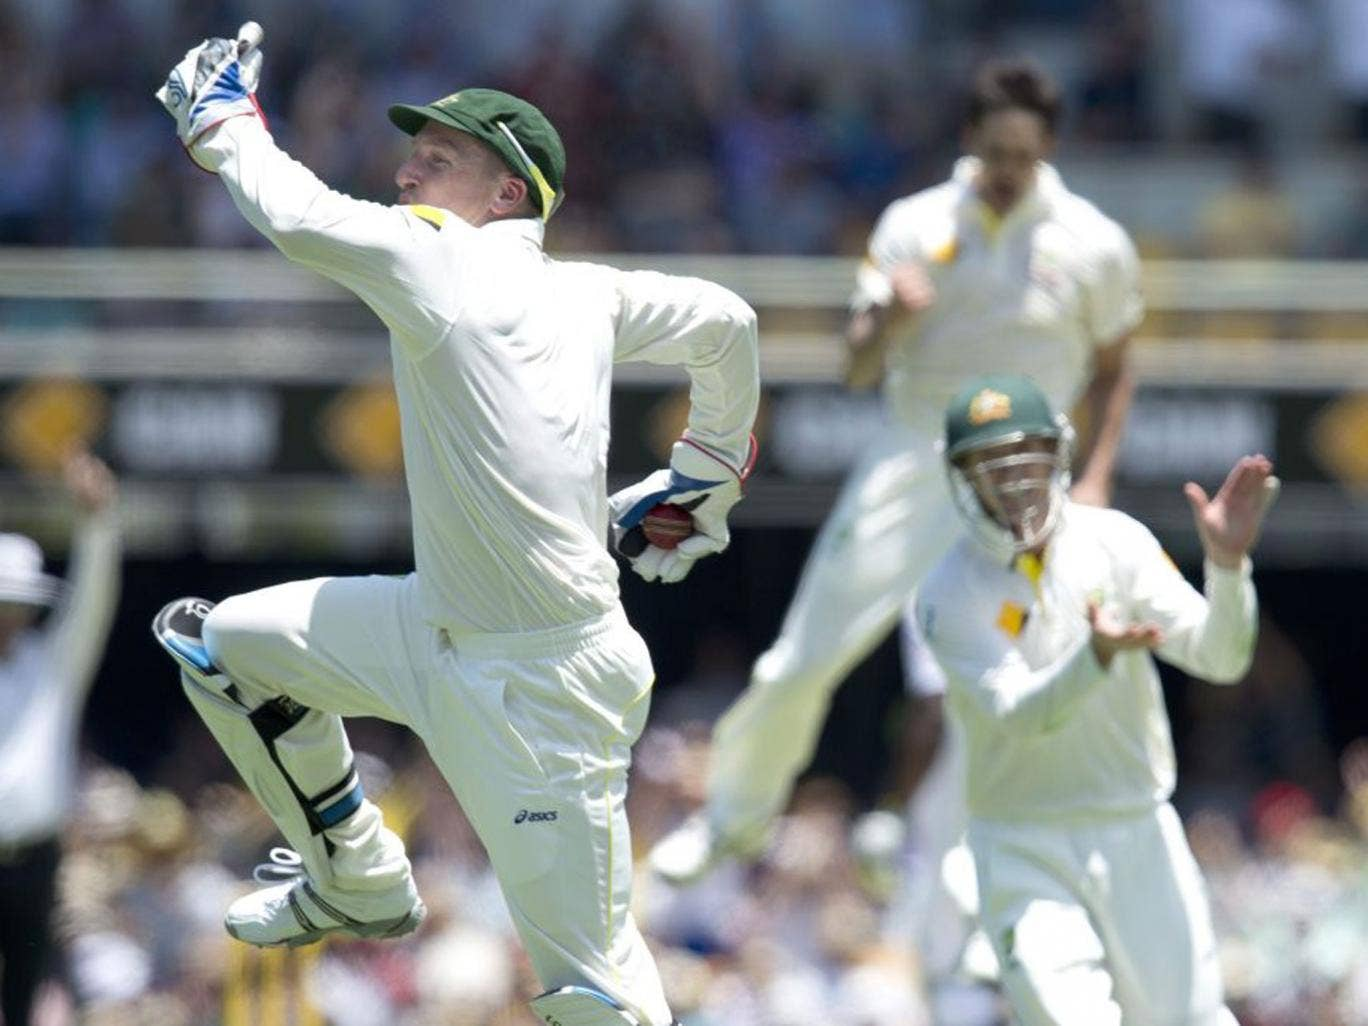 Australian wicket keeper Brad Haddin (left) celebrates after catching out England's batsman Jonathan Trott (not pictured) from the bowling of Mitchell Johnson on day two